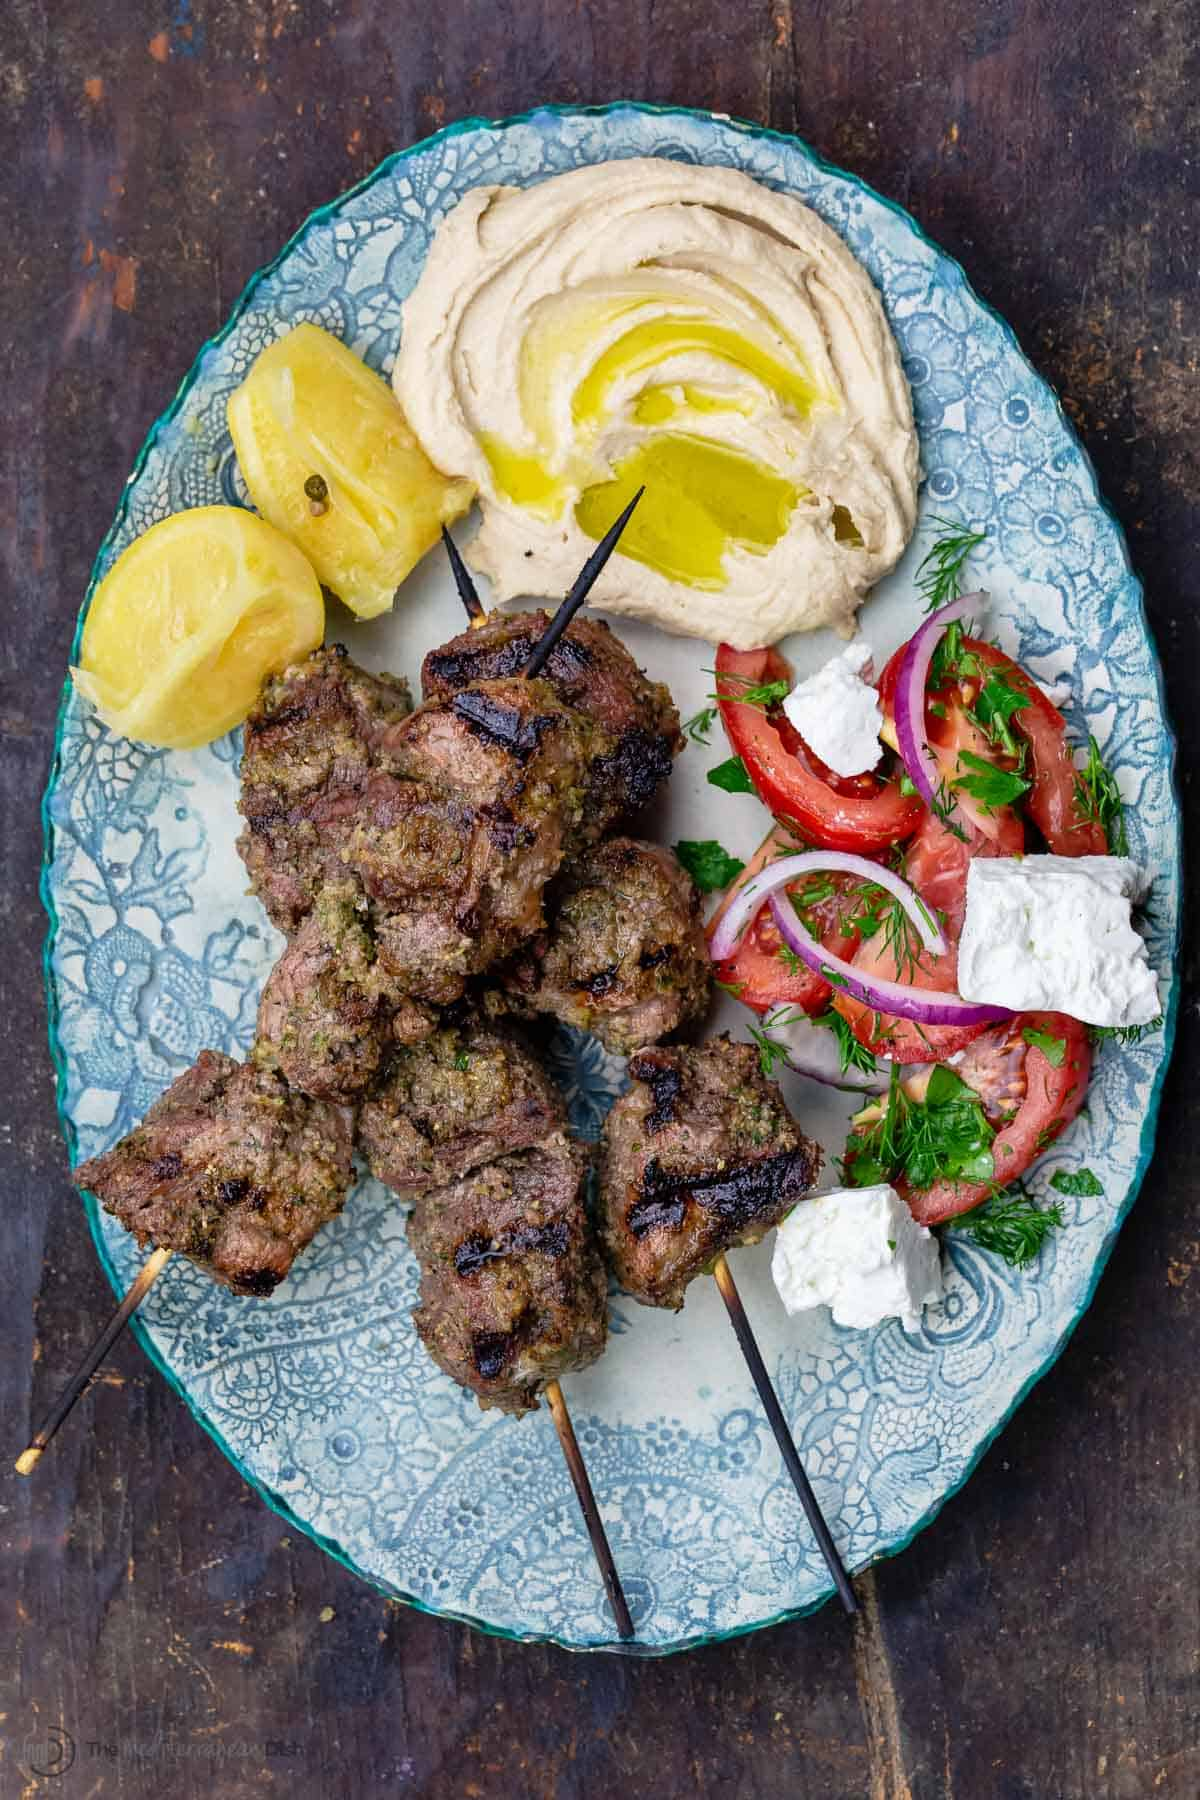 Lamb kabobs served on a plate with veggies and hummus